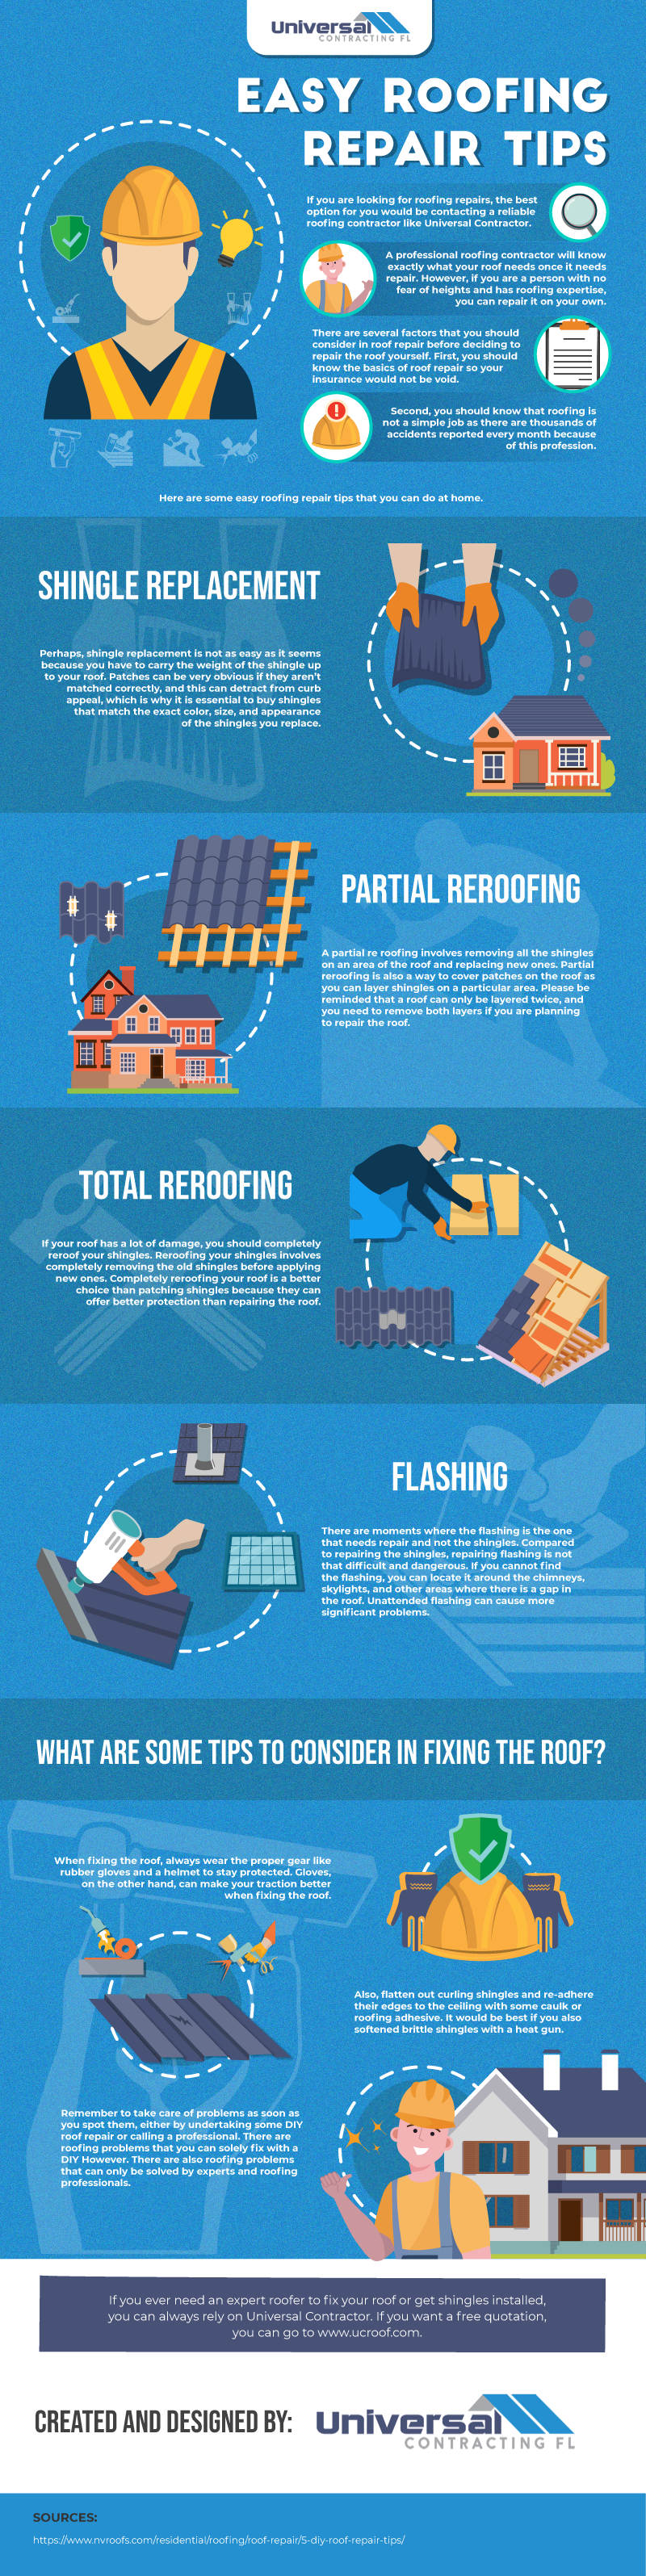 Easy Roofing Repair Tips Infographic